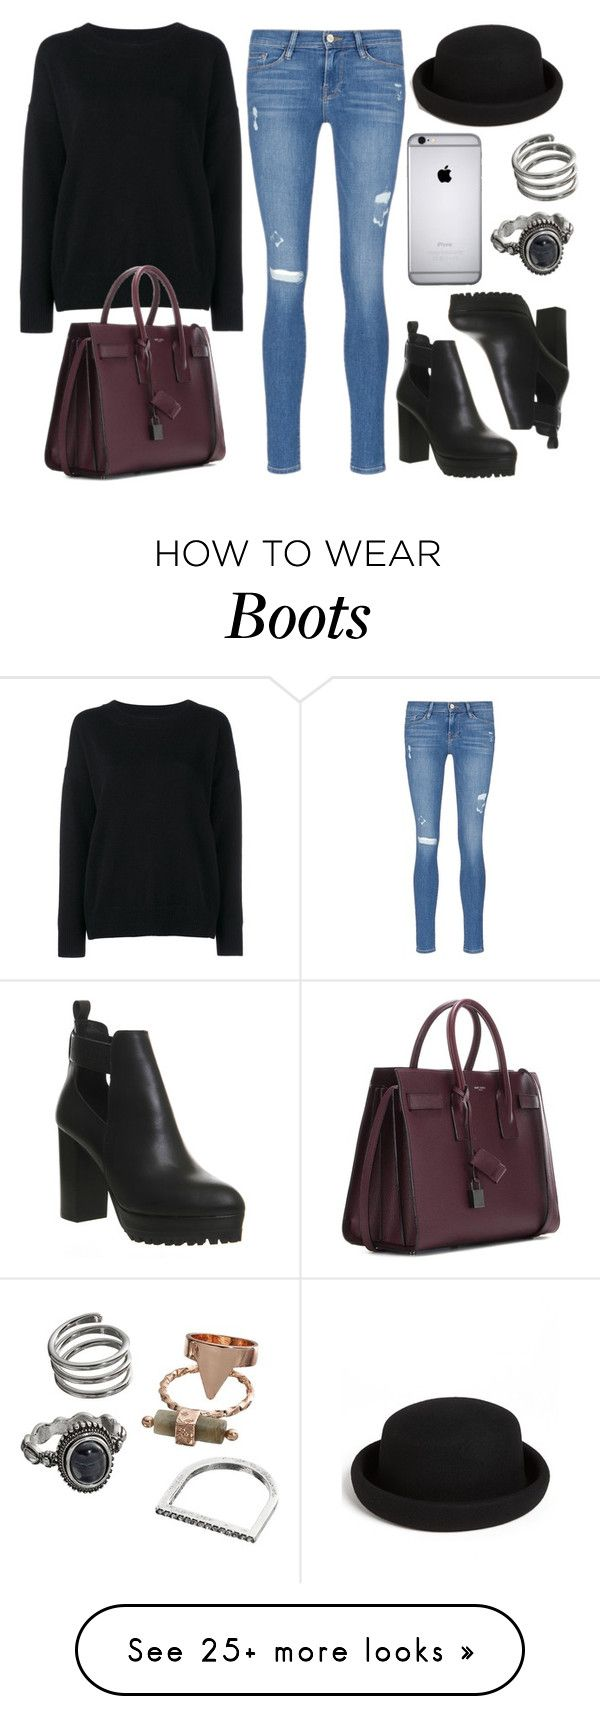 """""""Style #11075"""" by vany-alvarado on Polyvore featuring Frame Denim, Yves Saint Laurent, Office, Topshop and Mudd"""